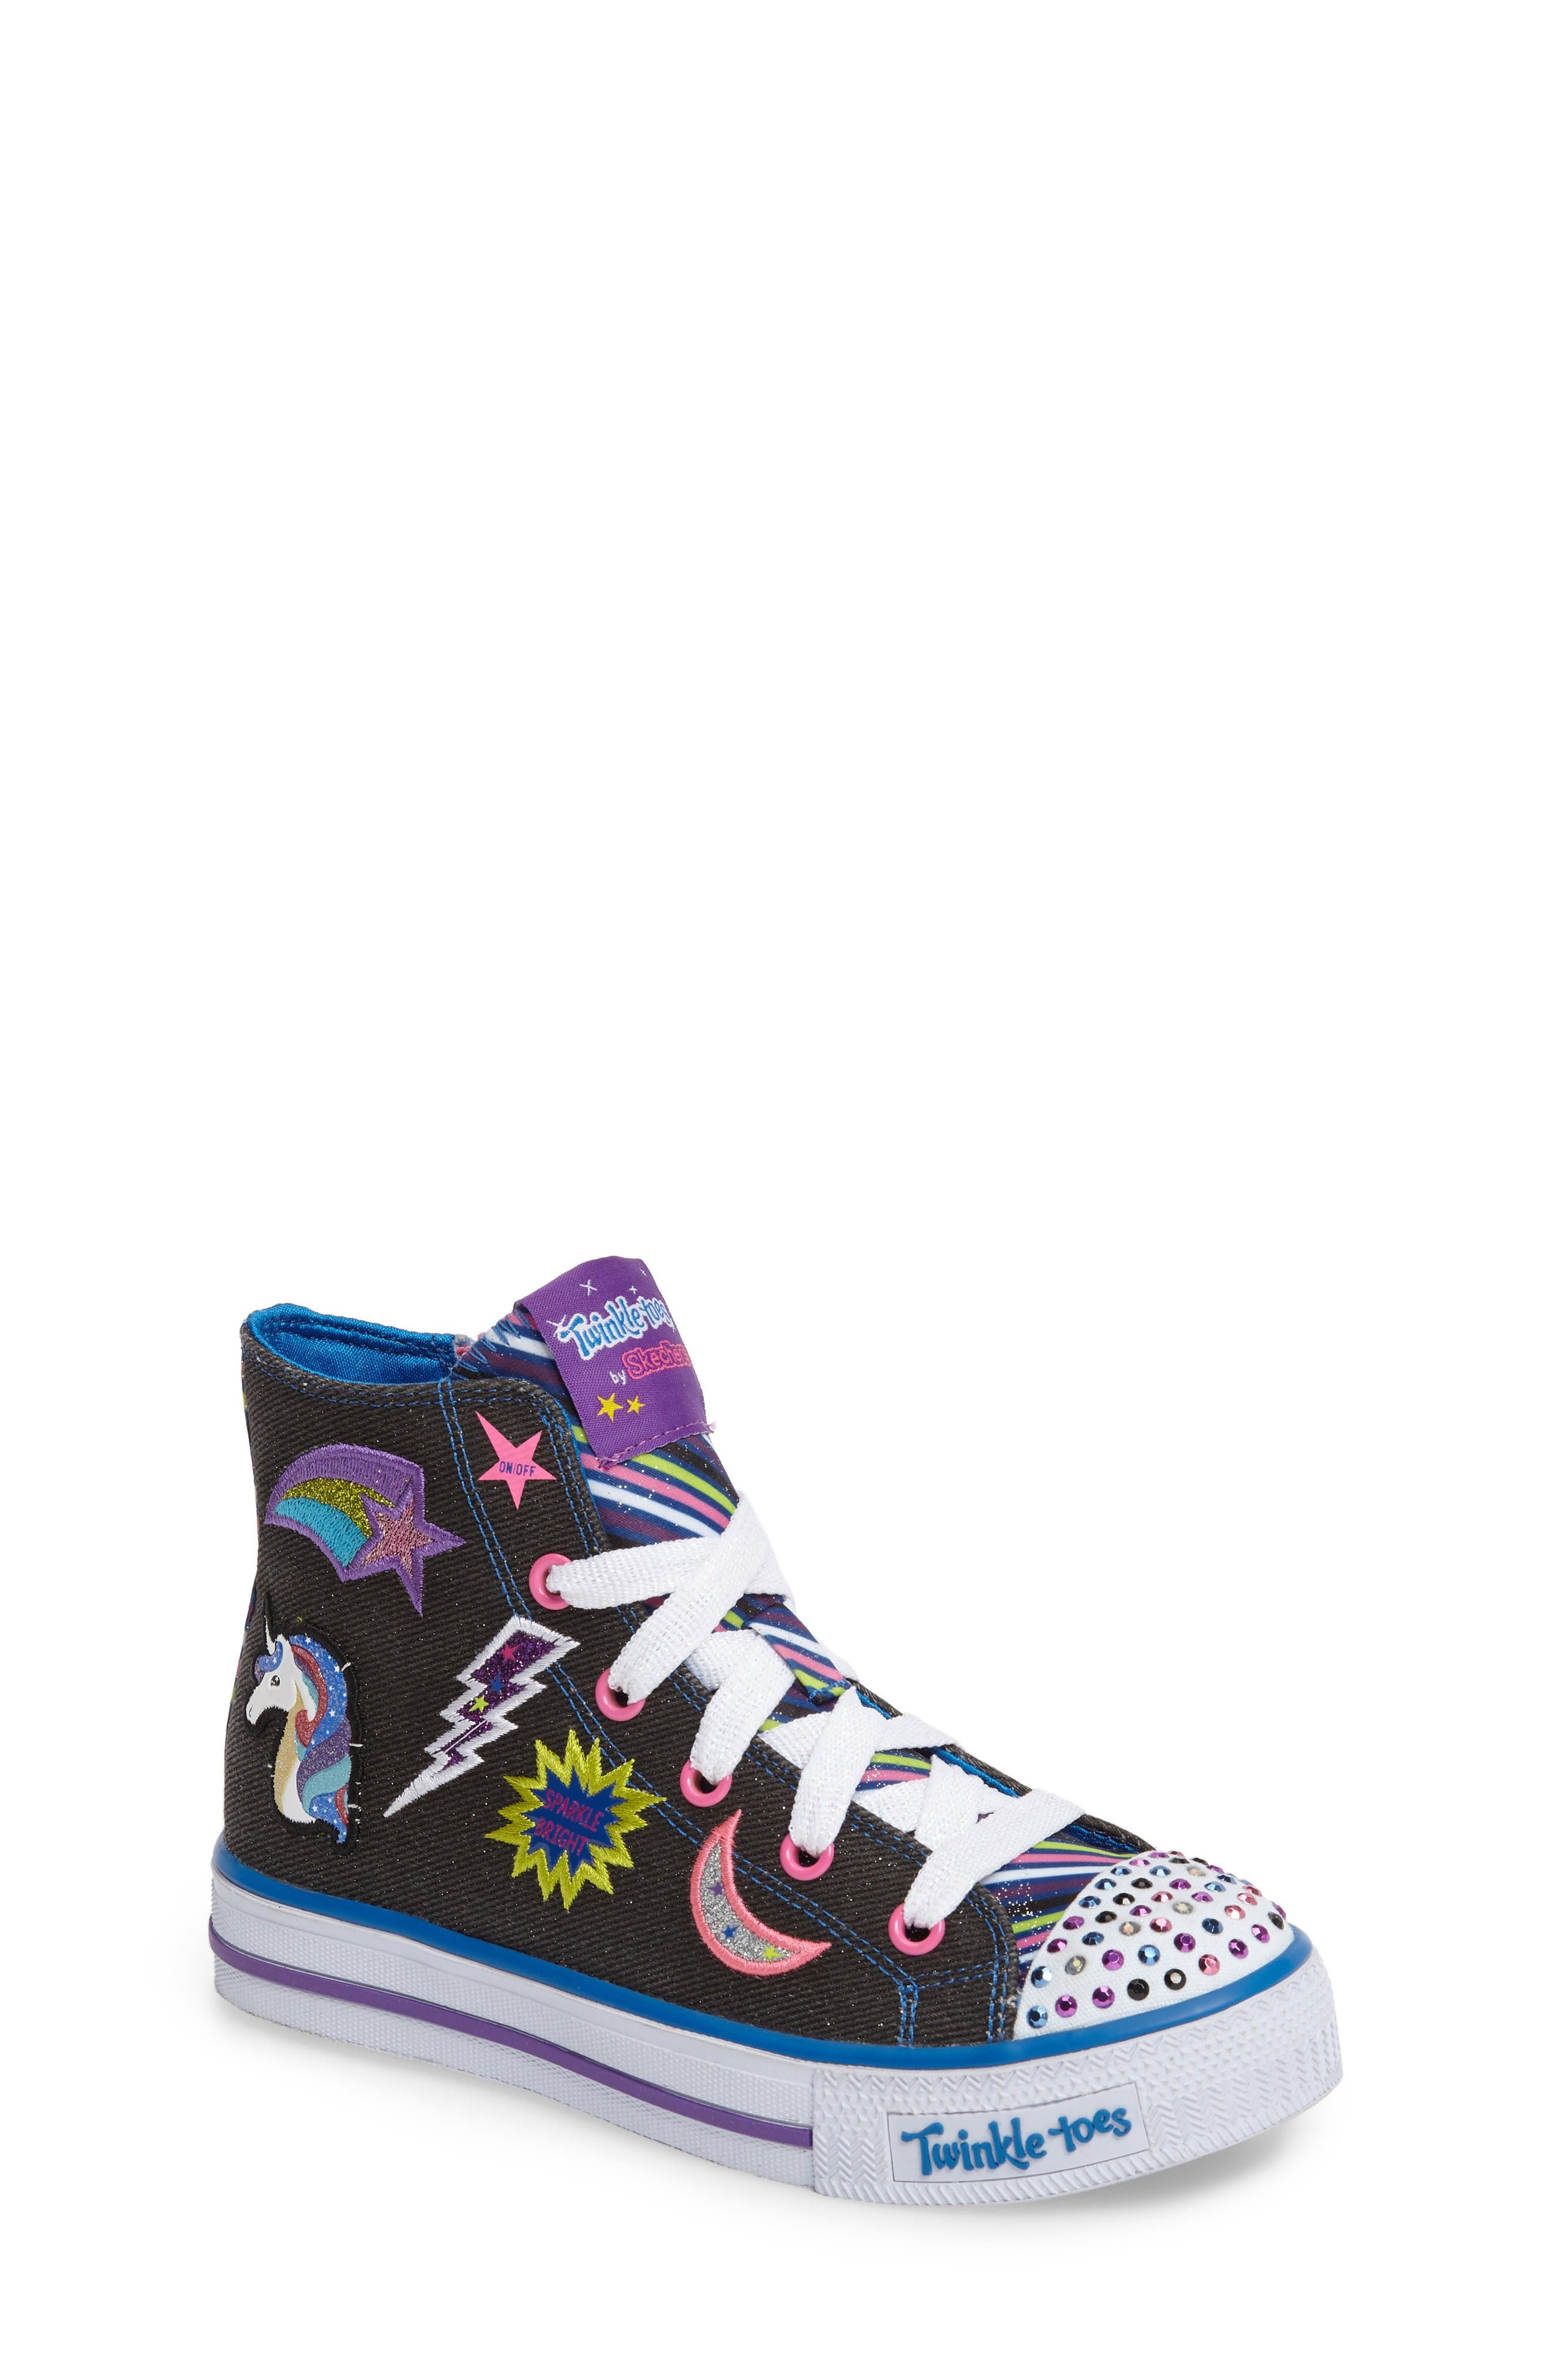 Twinkle Toes Shuffles Light-Up High Top Sneaker,                         Main,                         color, Black Canvas